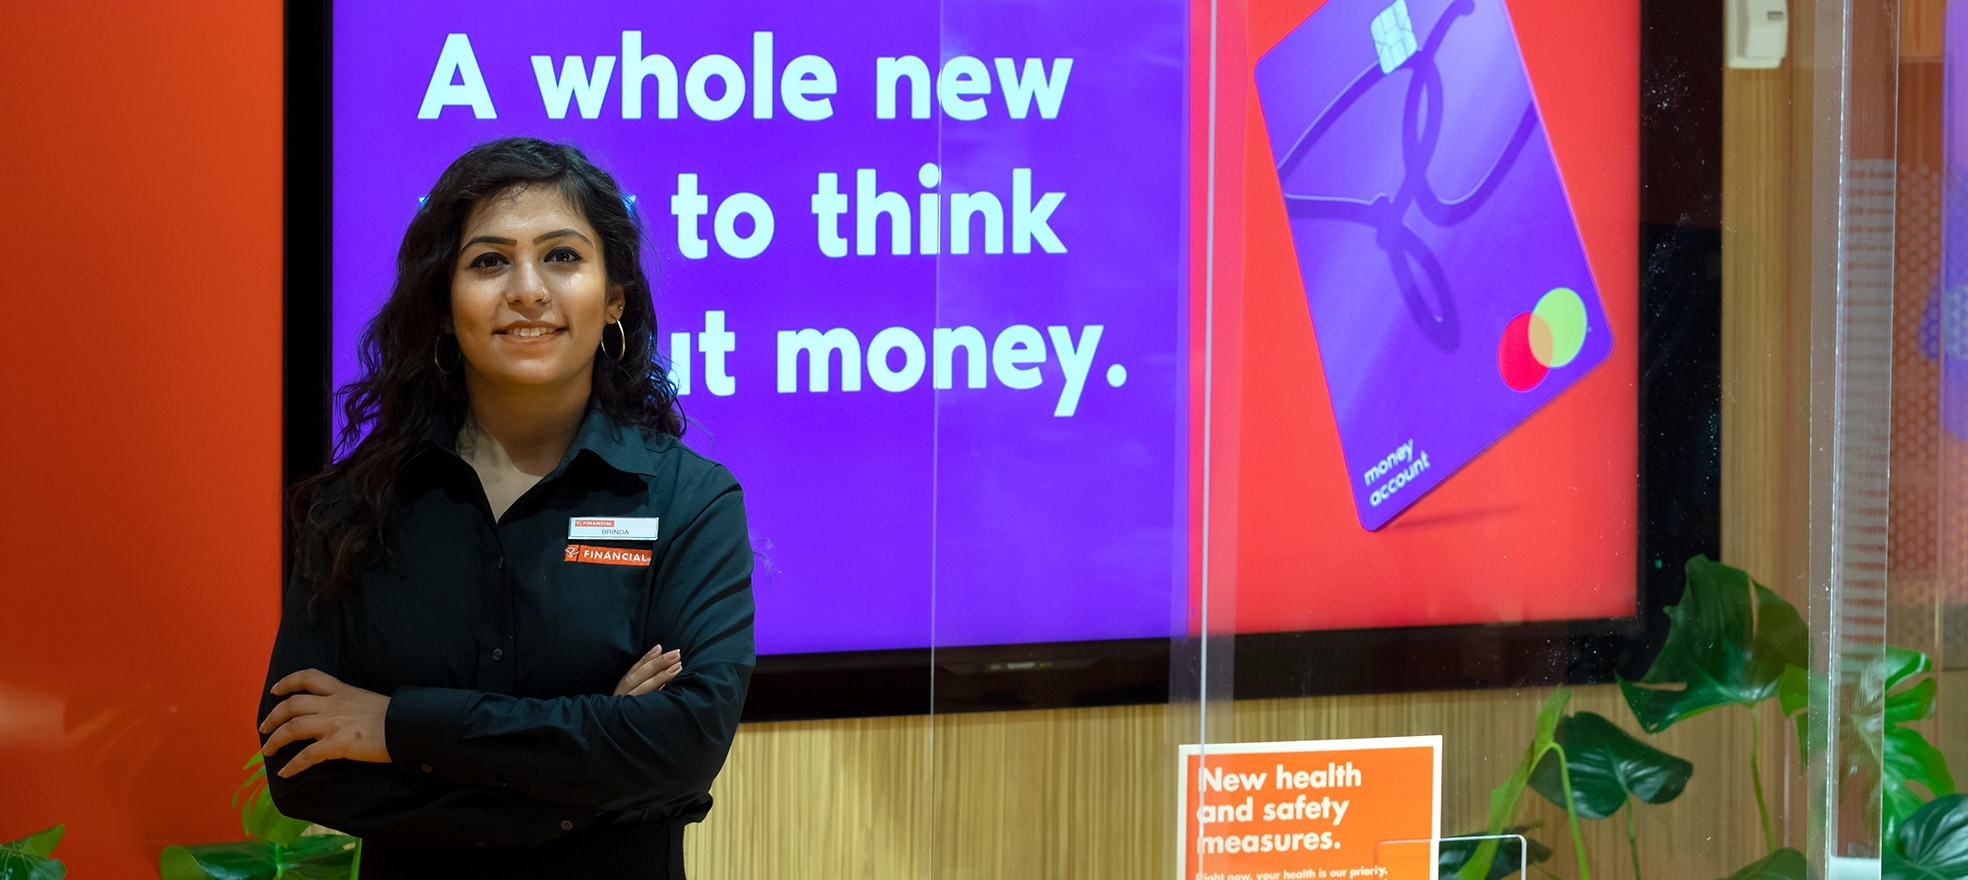 PC Financial employee standing with her arms across in front of a PC Financial ad on a screen.